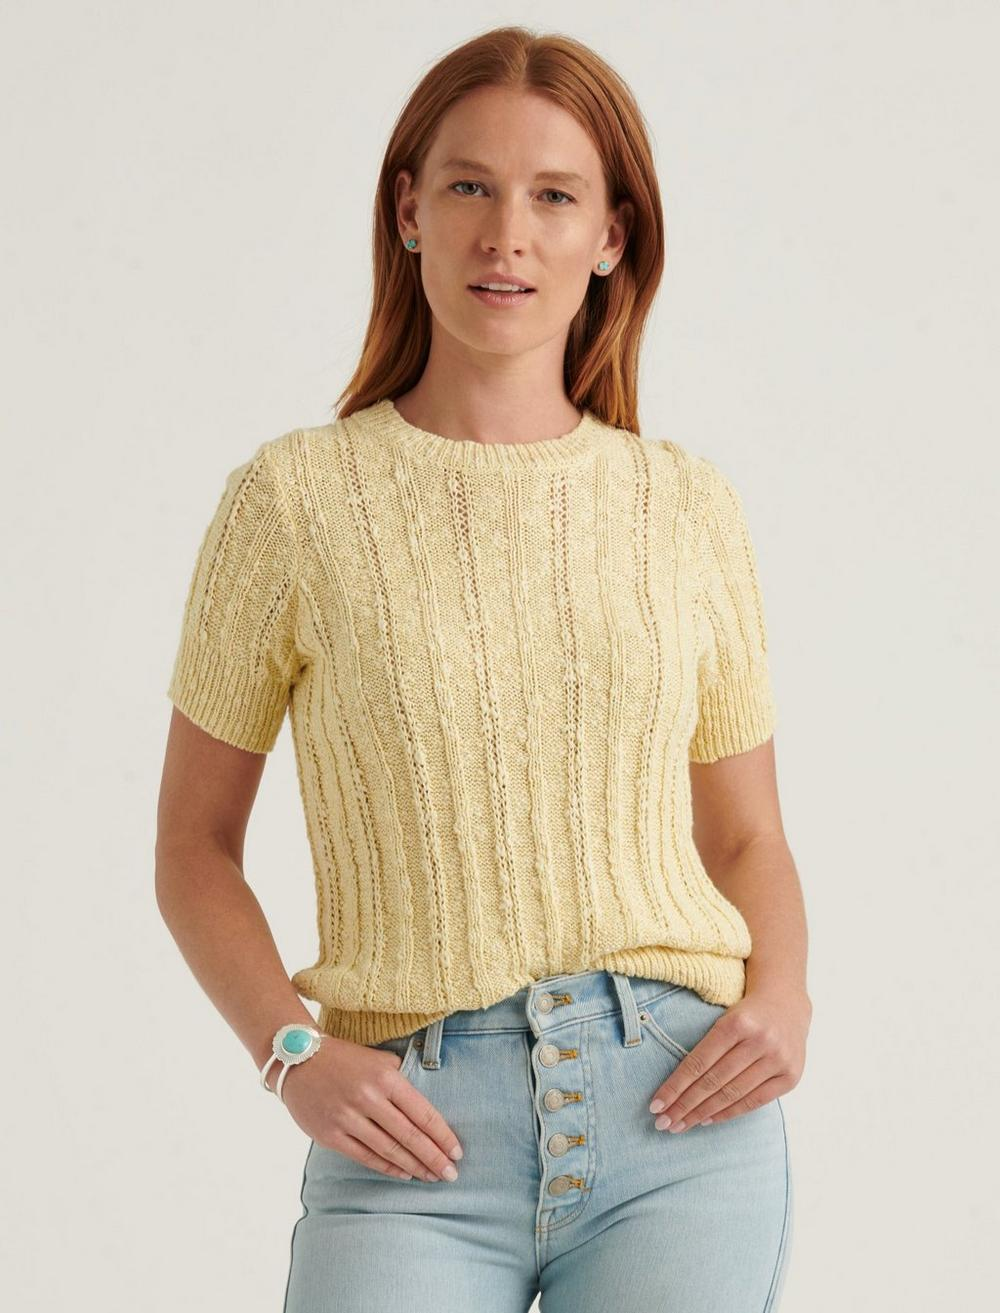 LIGHTWEIGHT SHORT SLEEVE CABLE SWEATER, image 1